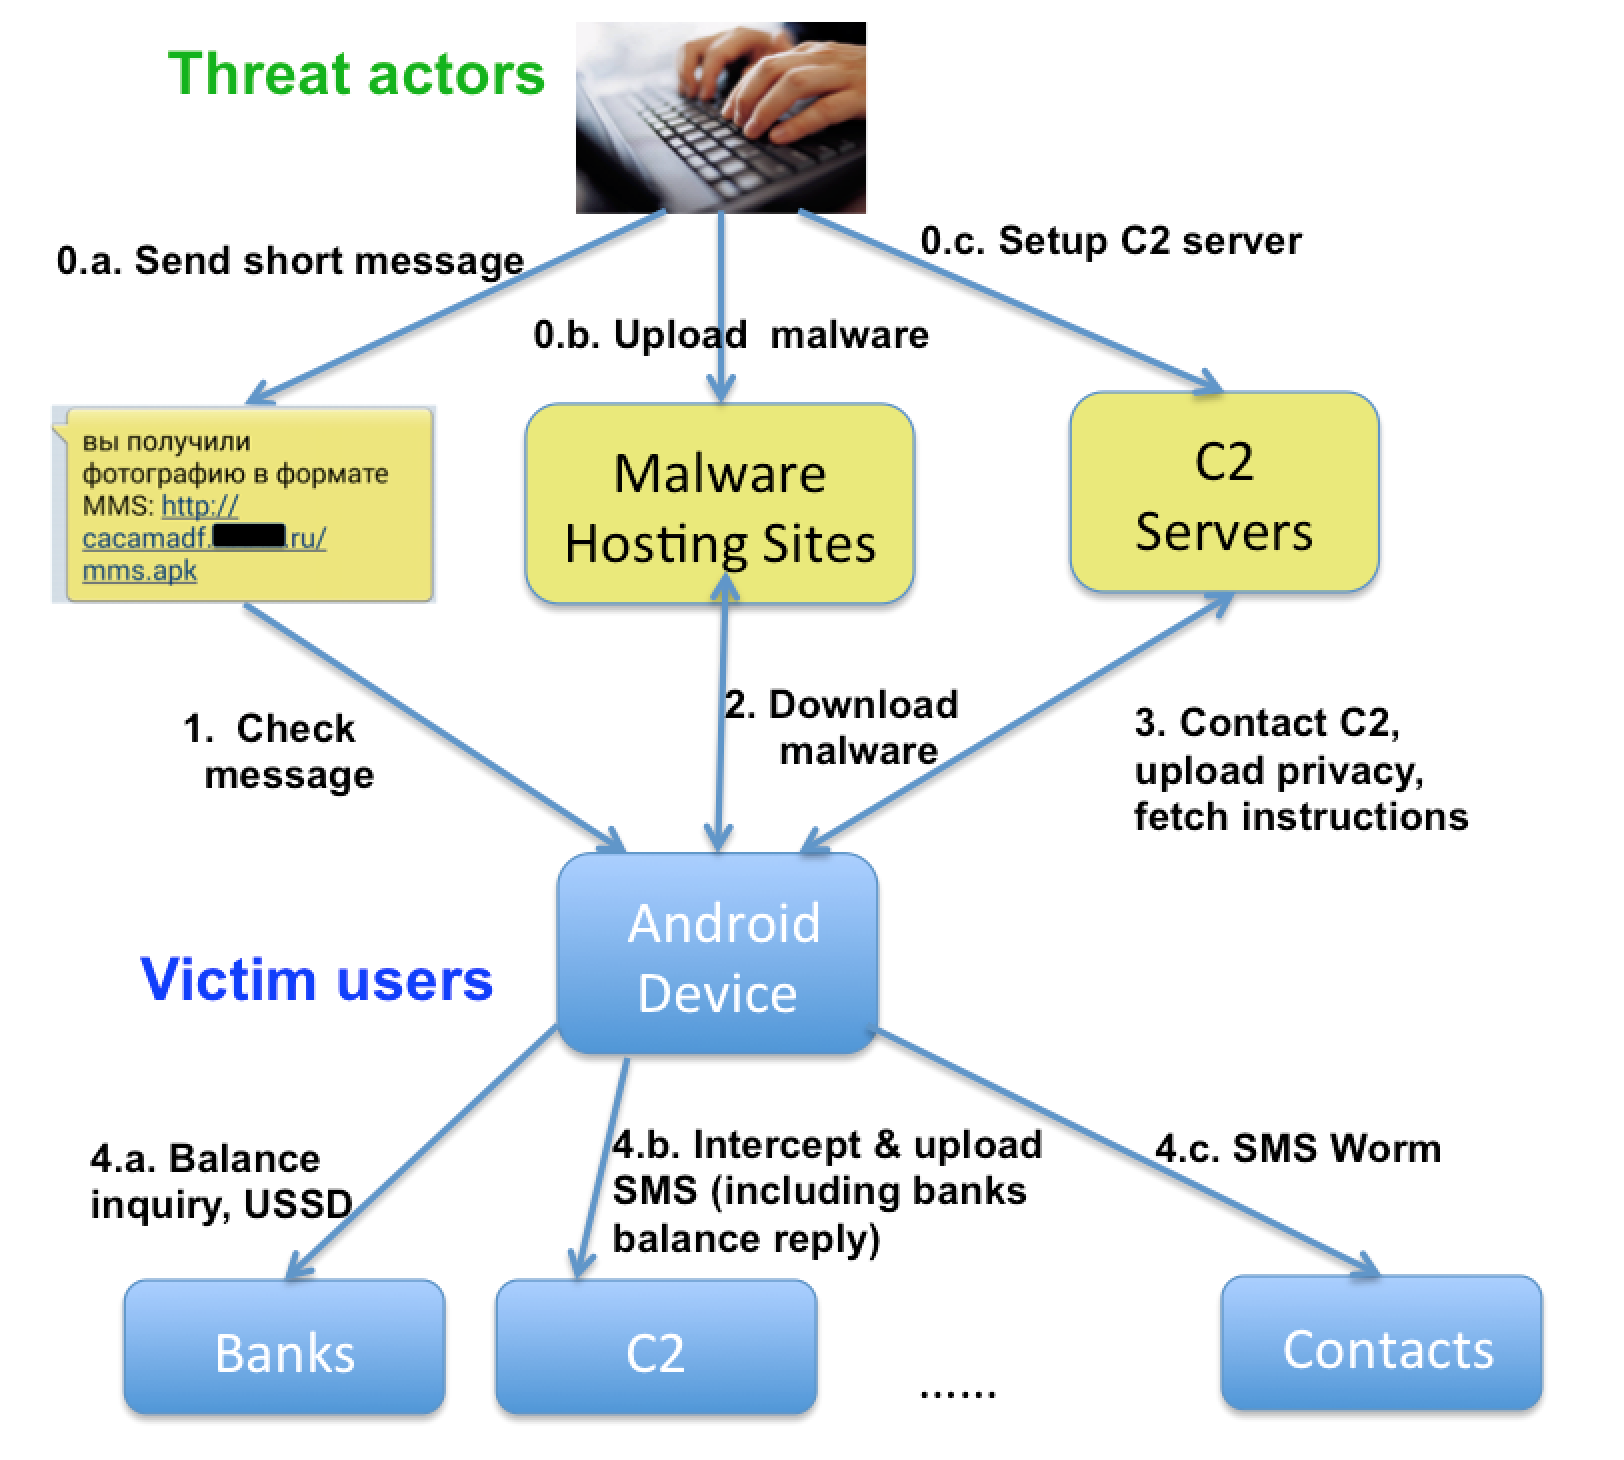 RuMMS: The Latest Family of Android Malware Attacking Users in